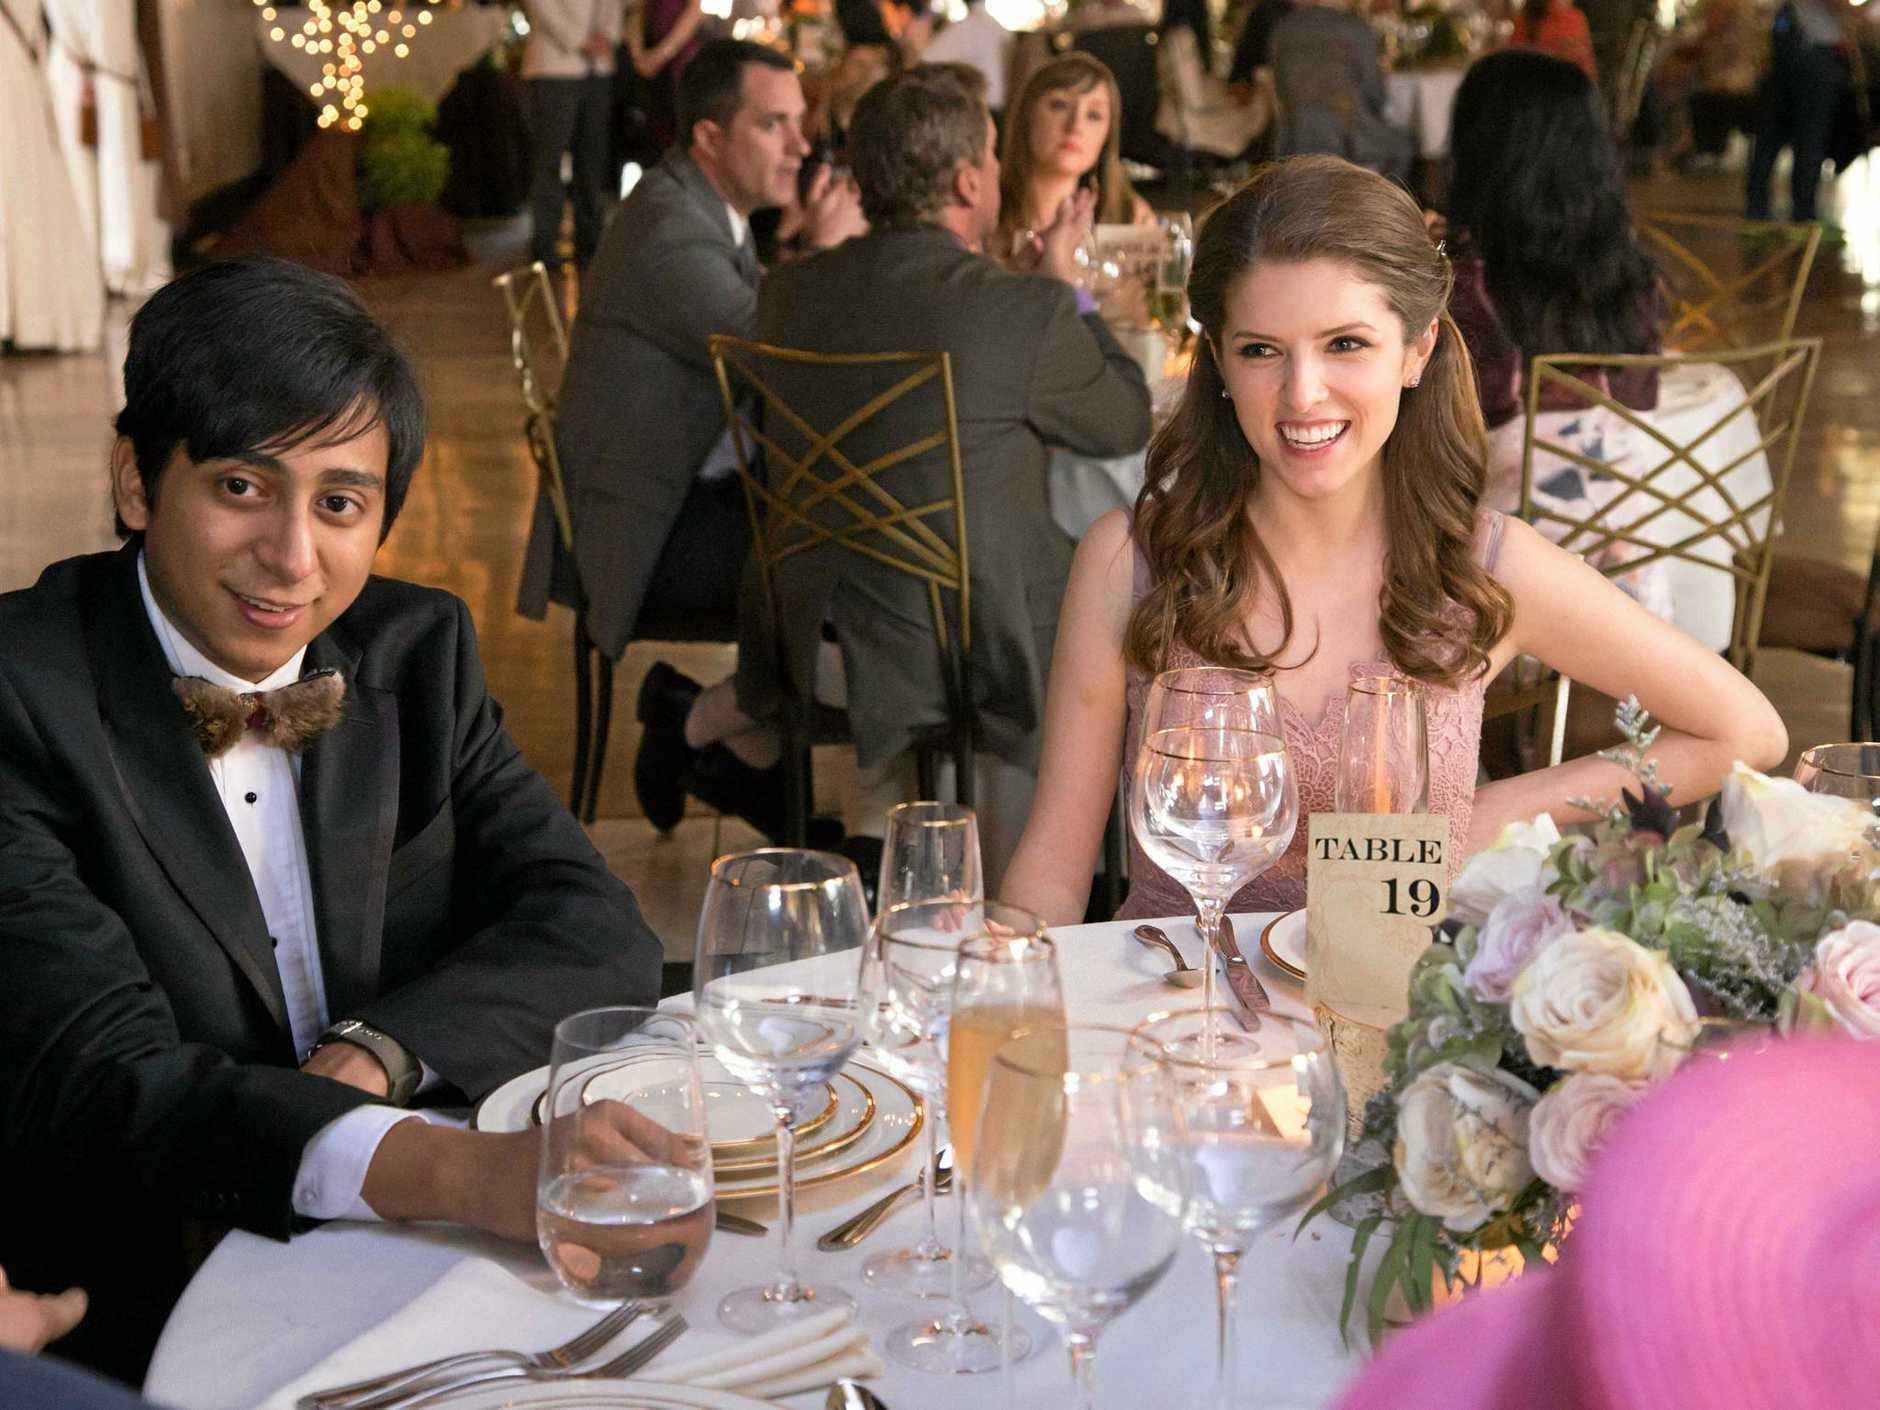 Tony Revolori and Anna Kendrick in a scene from the movie Table 19.